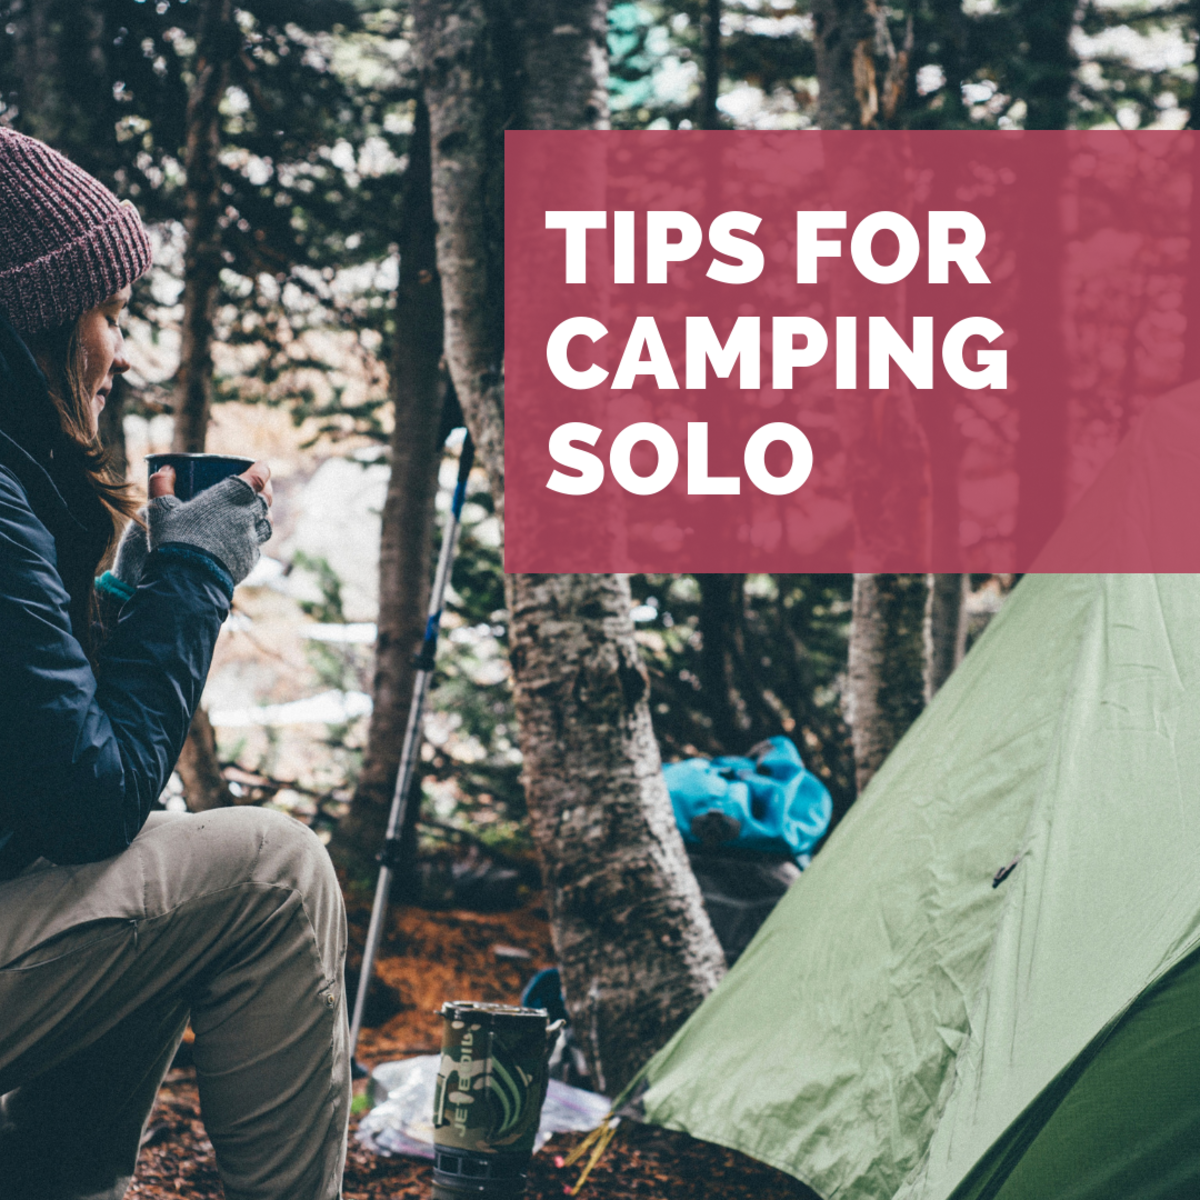 Tips for women who enjoy camping alone.